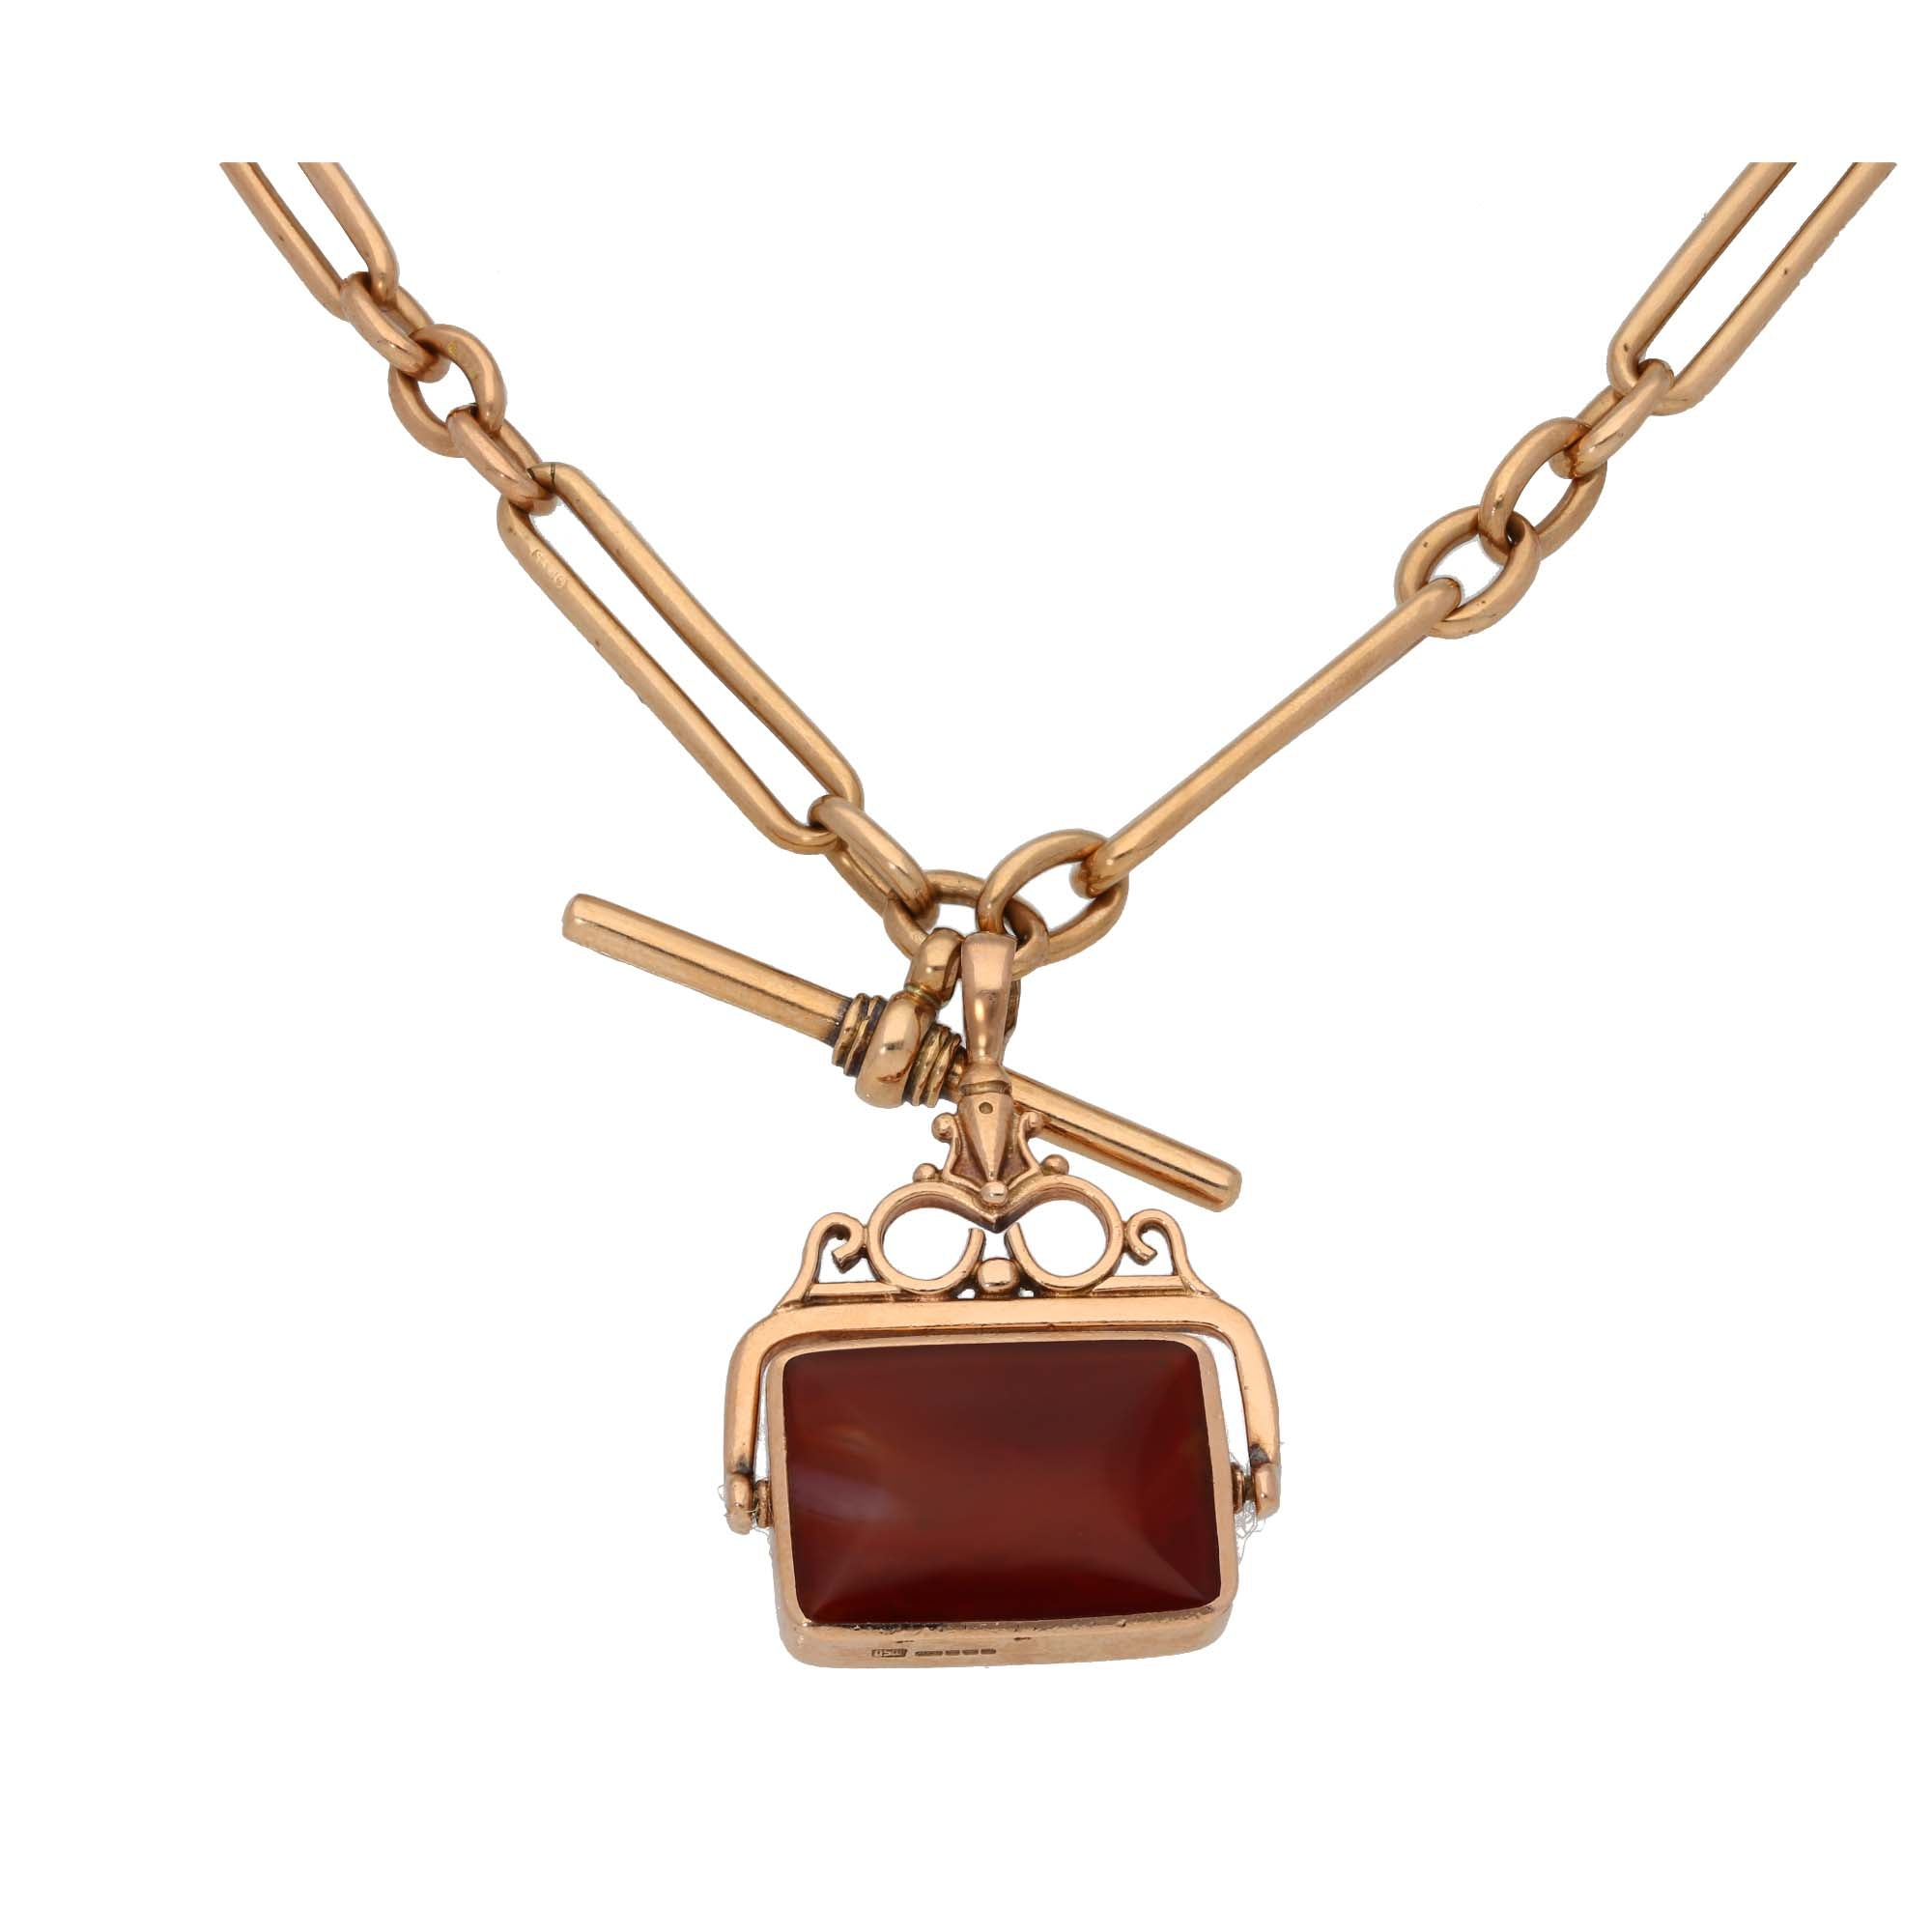 9ct Rose Gold Bloodstone & Carnelian Ladies Fob Pendant With Chain